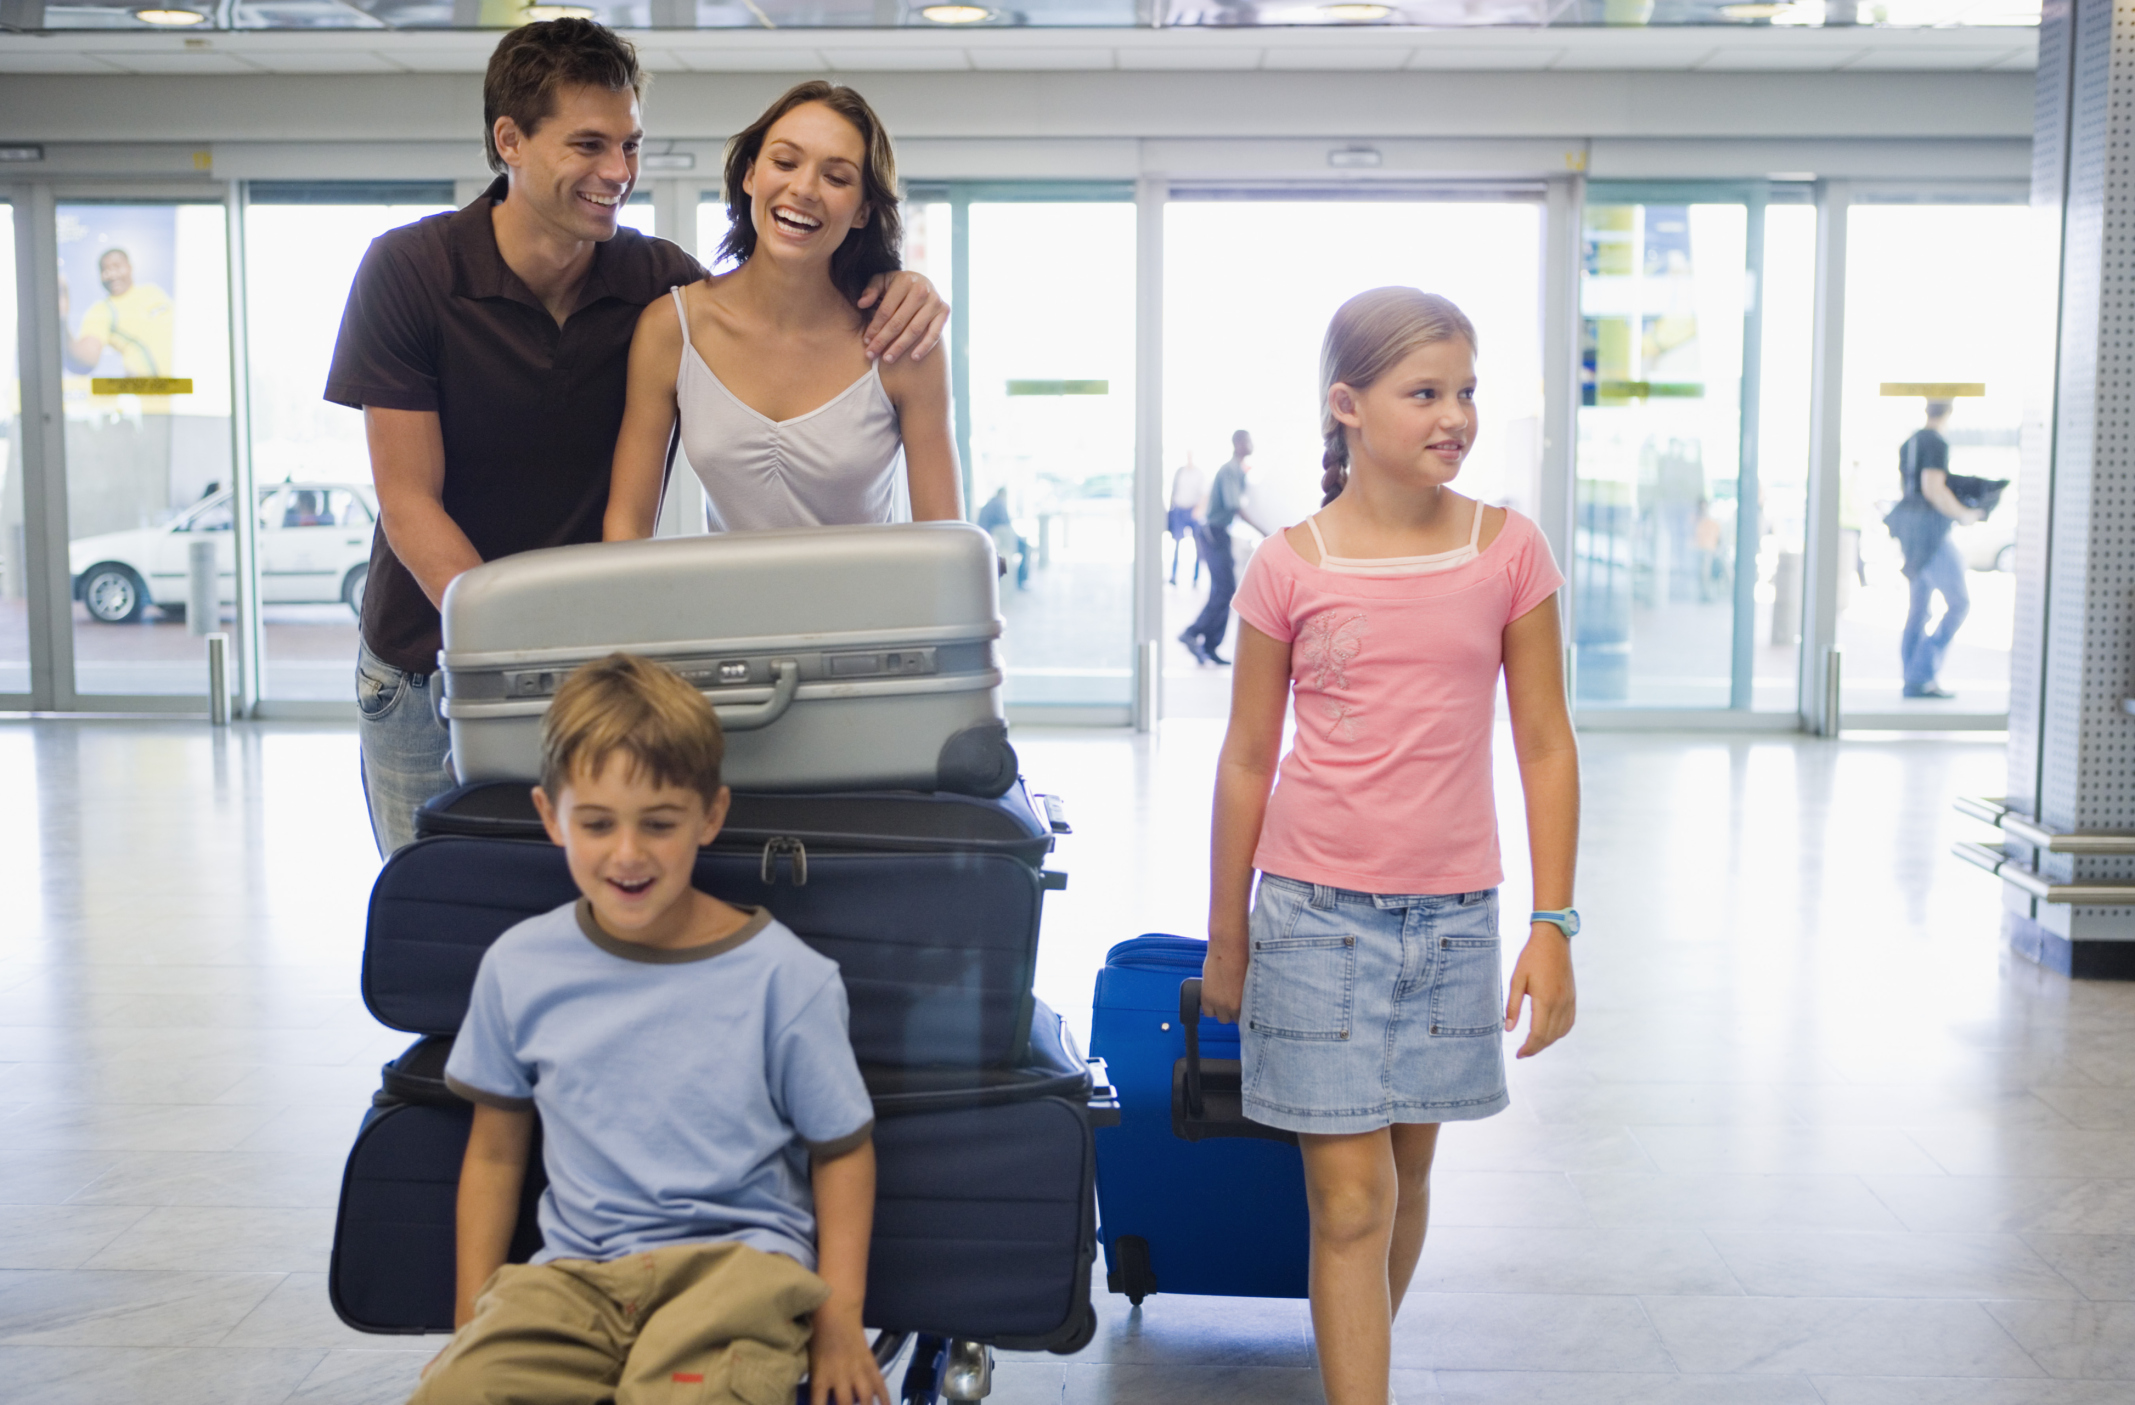 What Do Kids Use As Id For Check In At The Airport